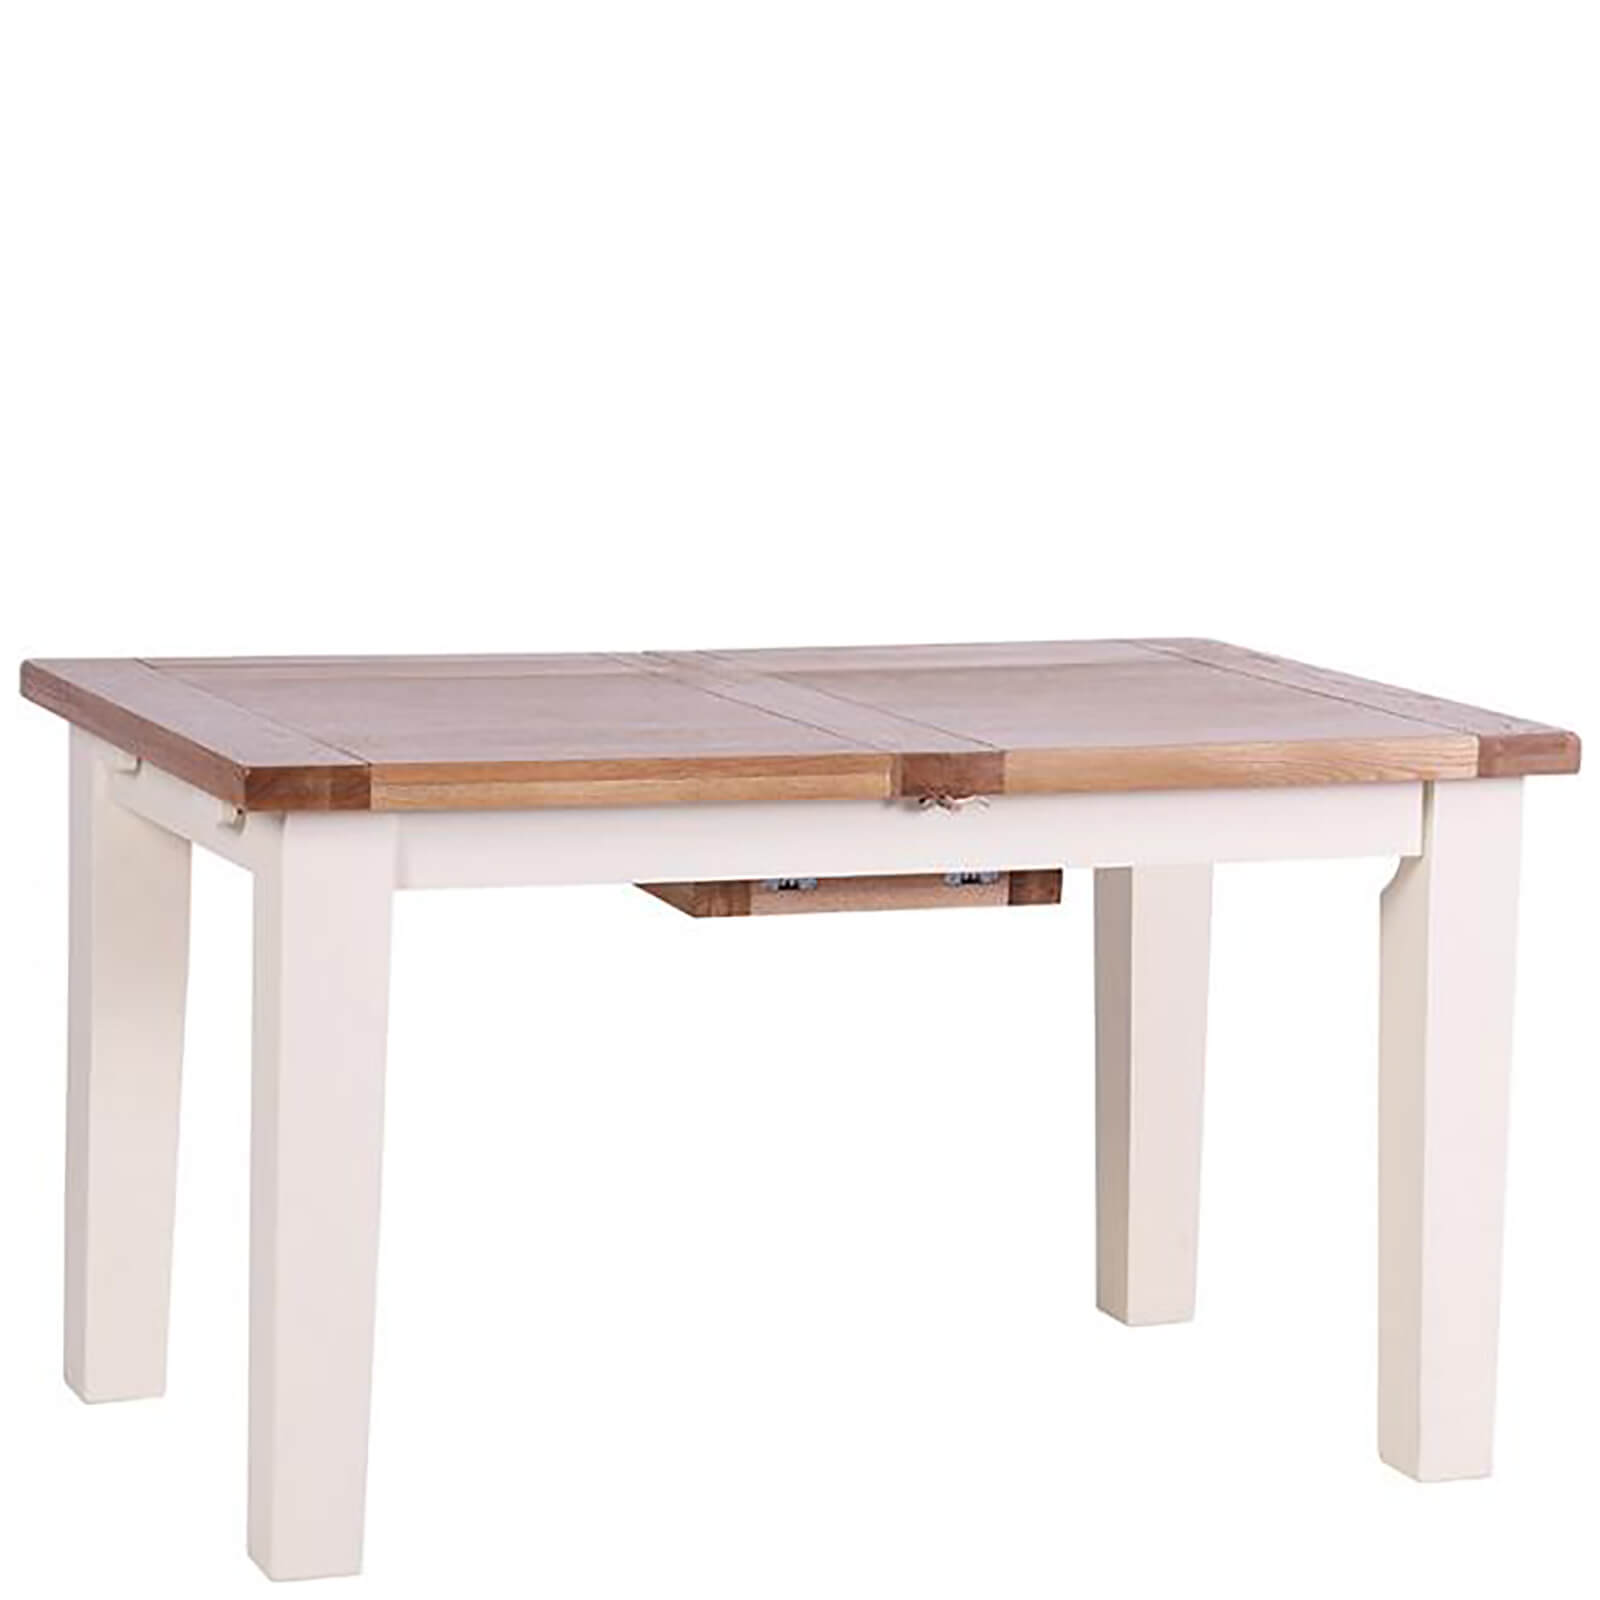 Vancouver Expressions Linen Extension Dining Table (1.4m - 1.8m)